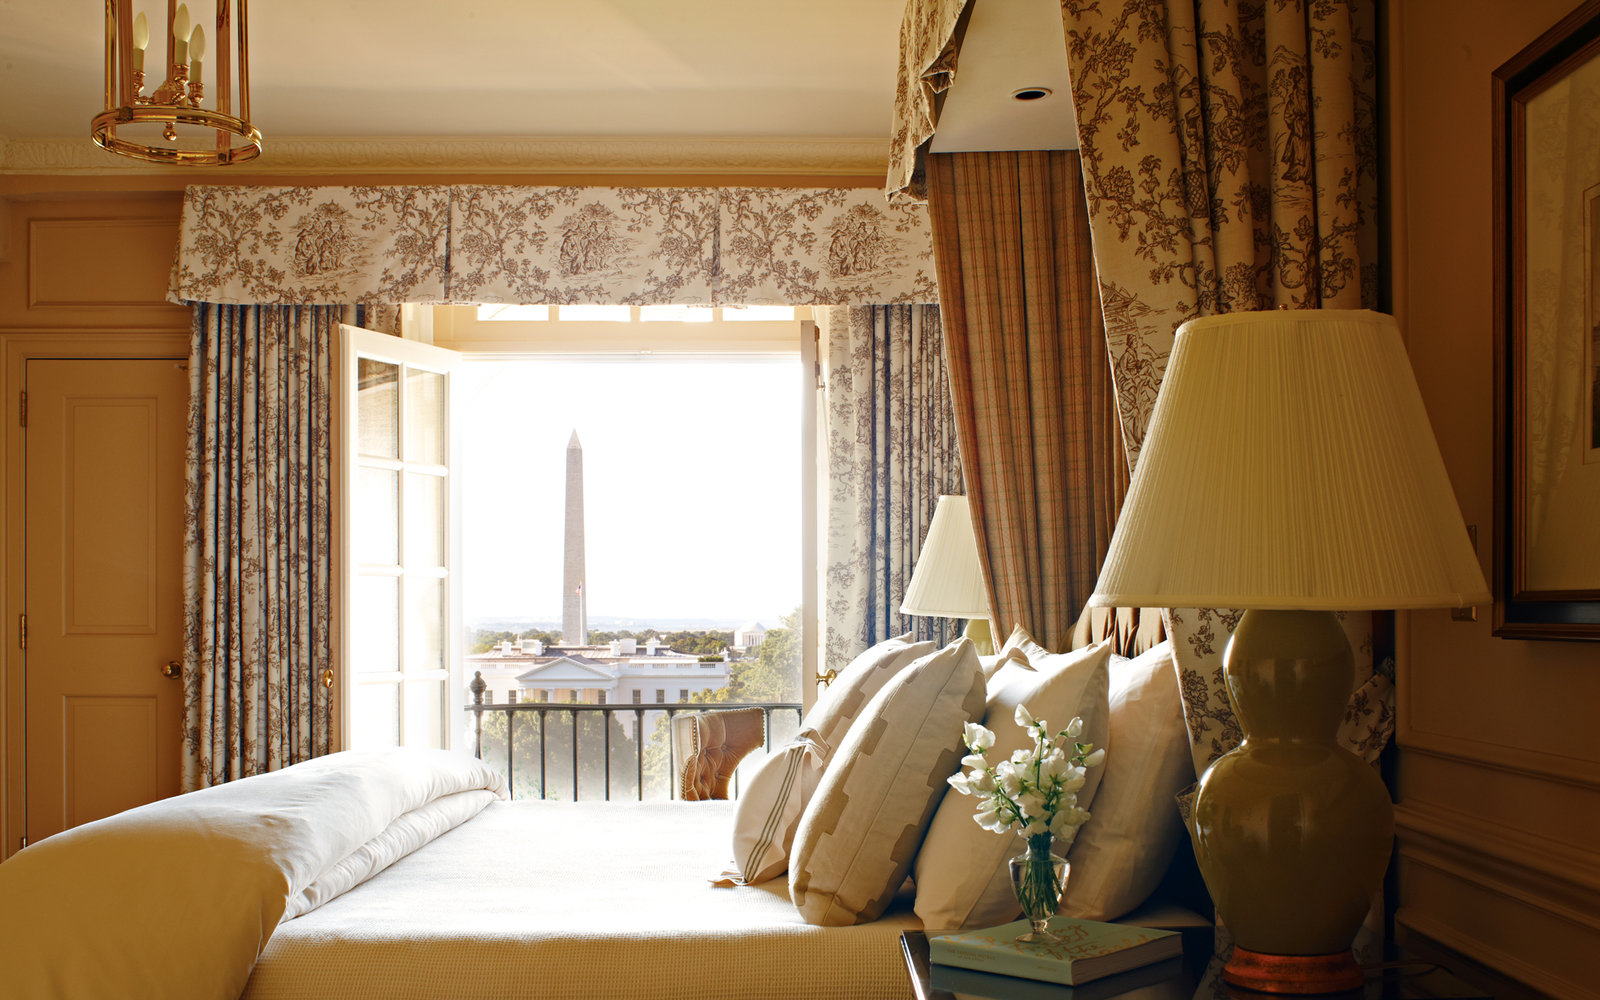 World's Best Hotels in Washington D.C.